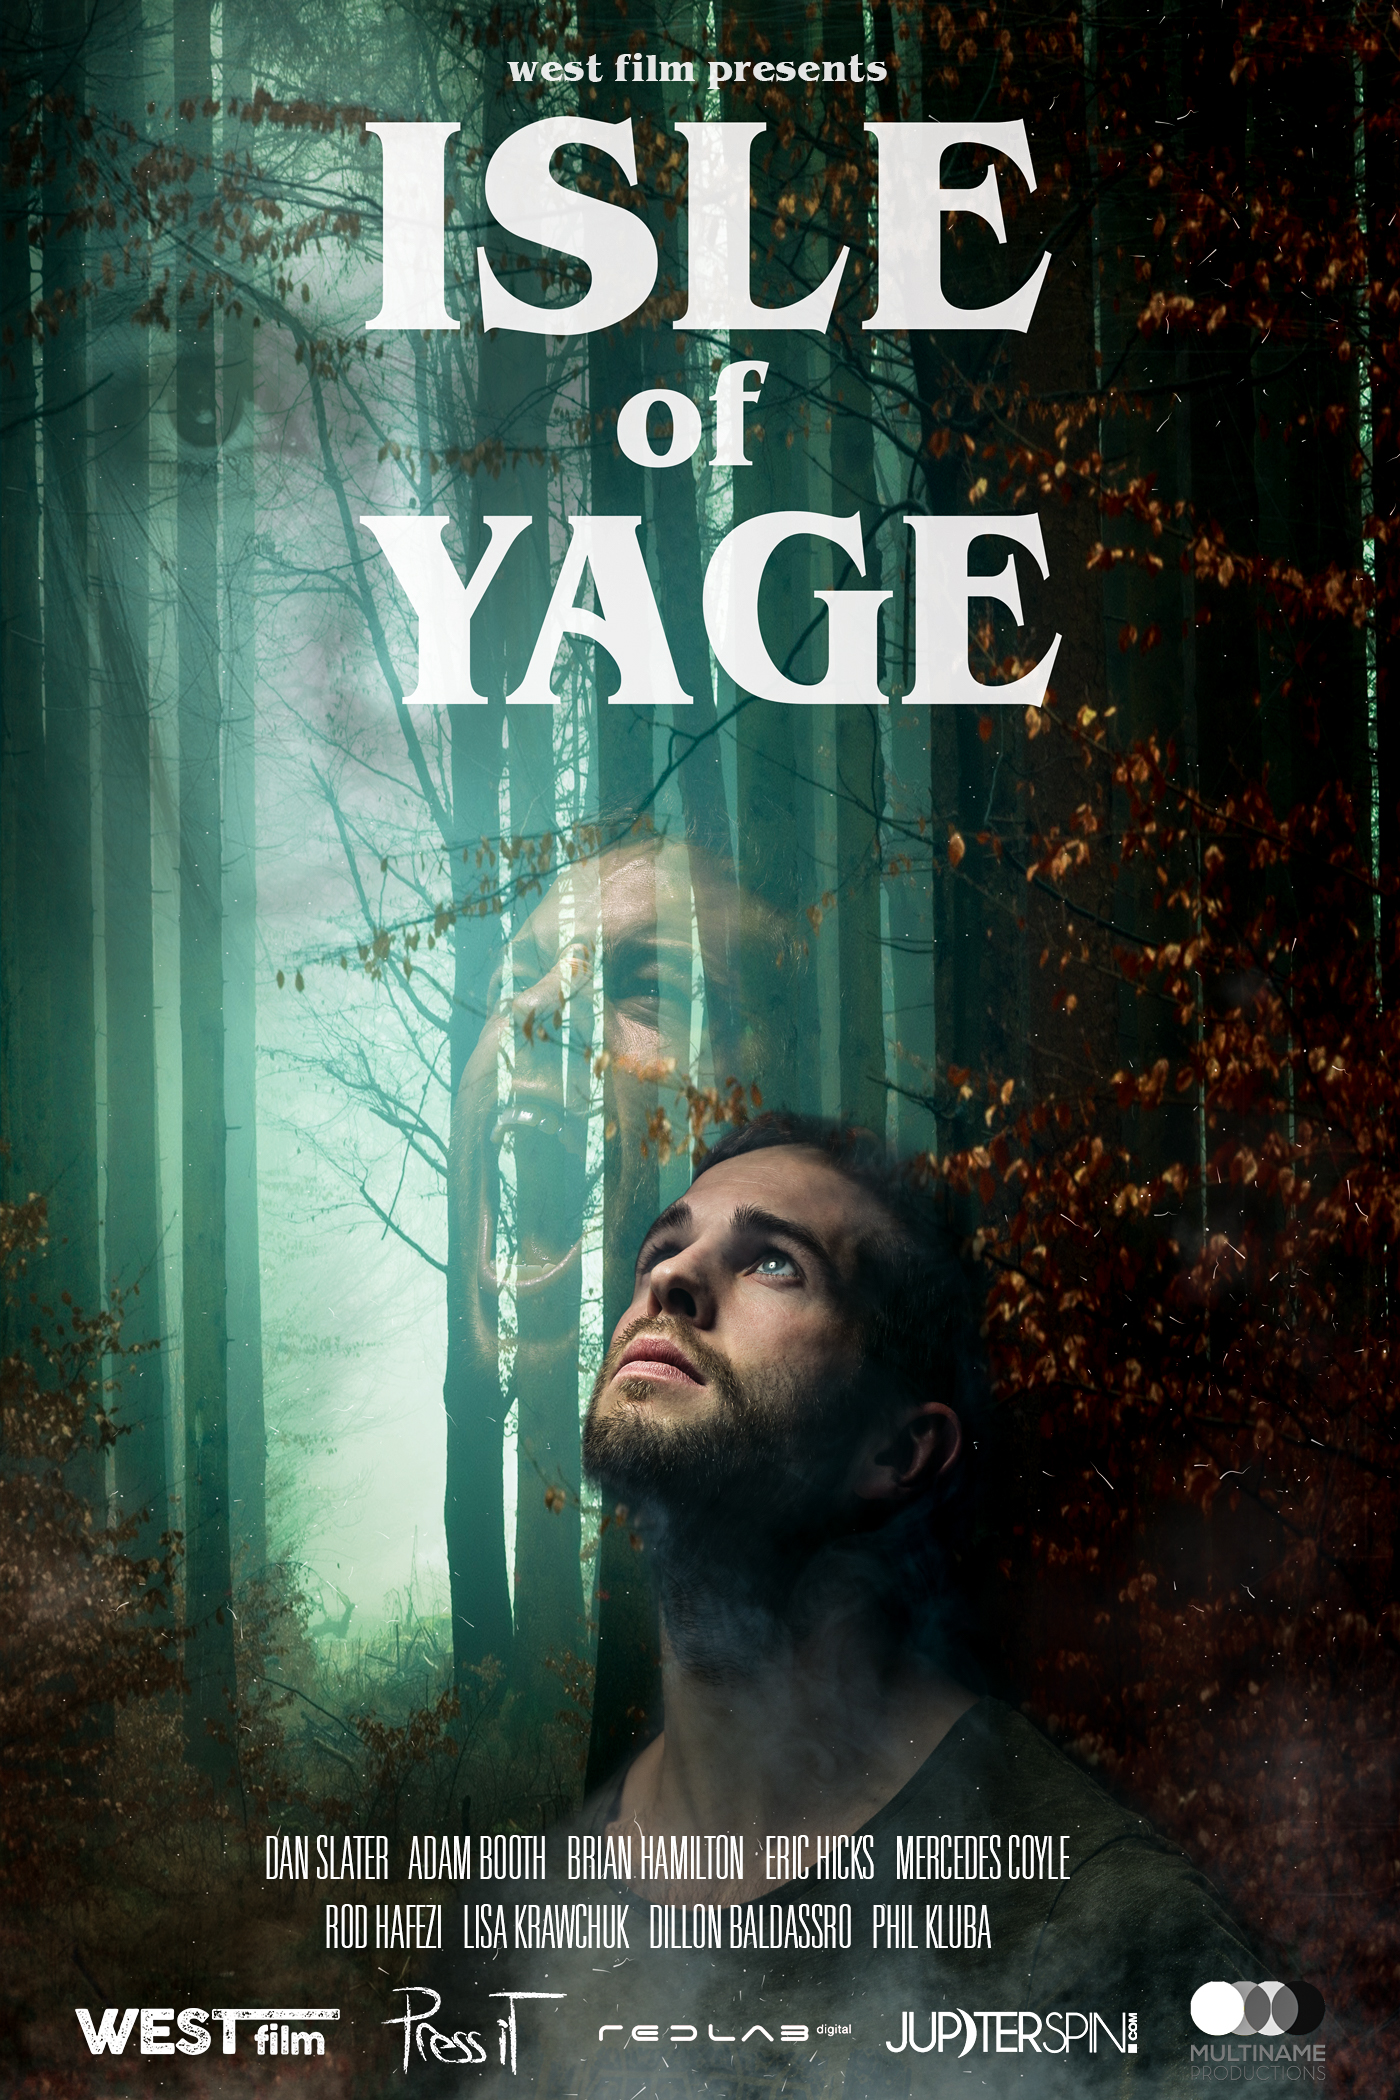 Isle of Yage  - Psychological Thriller (Feature Length)Written By: Adam Booth, Dan Slater, Mercedes CoyleBudget: 1MA group of strangers travelling in Costa Rica seek a transcendent experience through the drug, Ayahuasca. But once they look inside themselves there is no turning back.